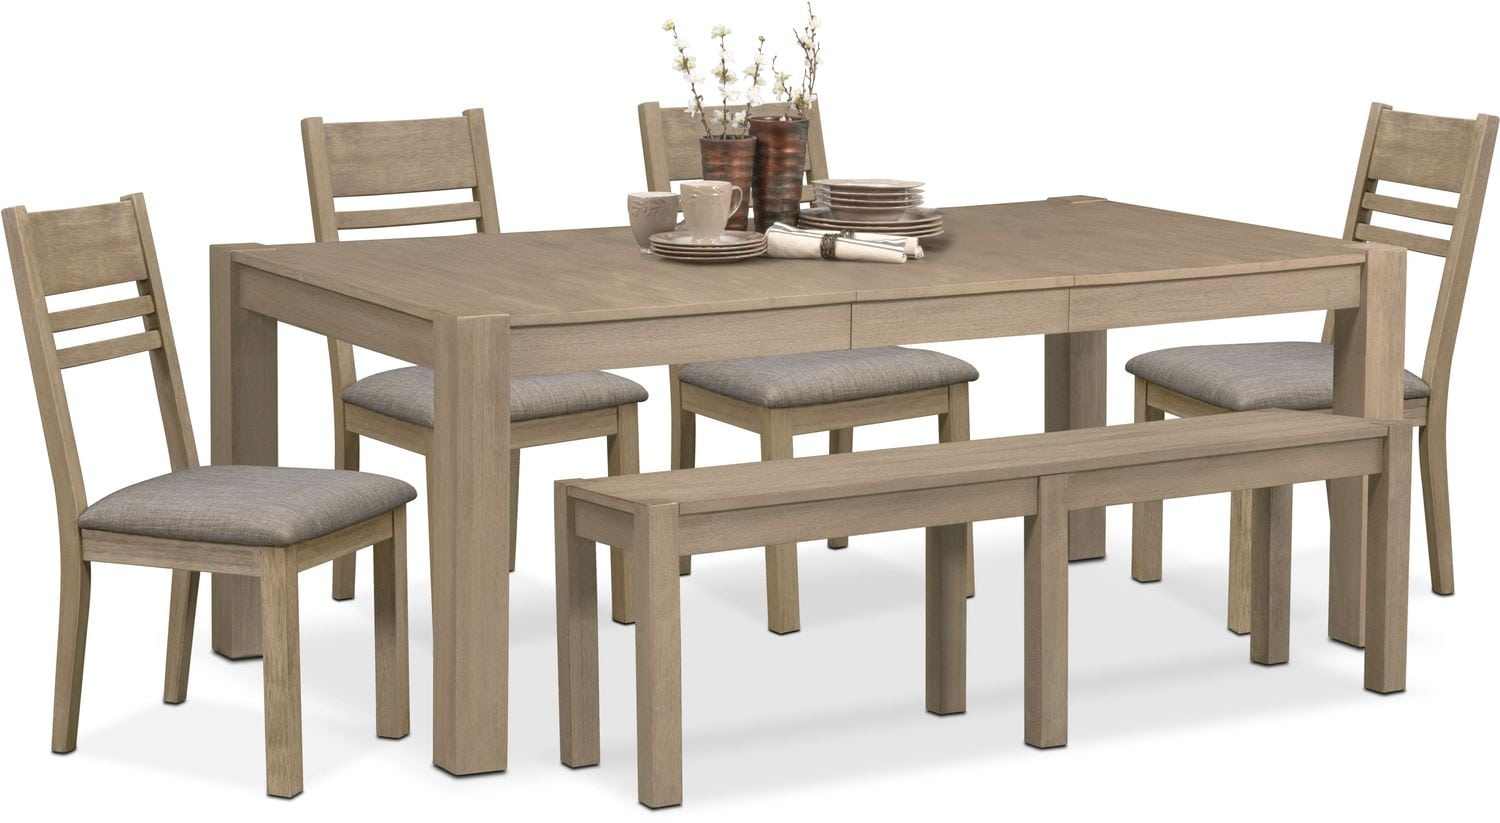 Wonderful Tribeca Table, 4 Side Chairs And Bench   Gray